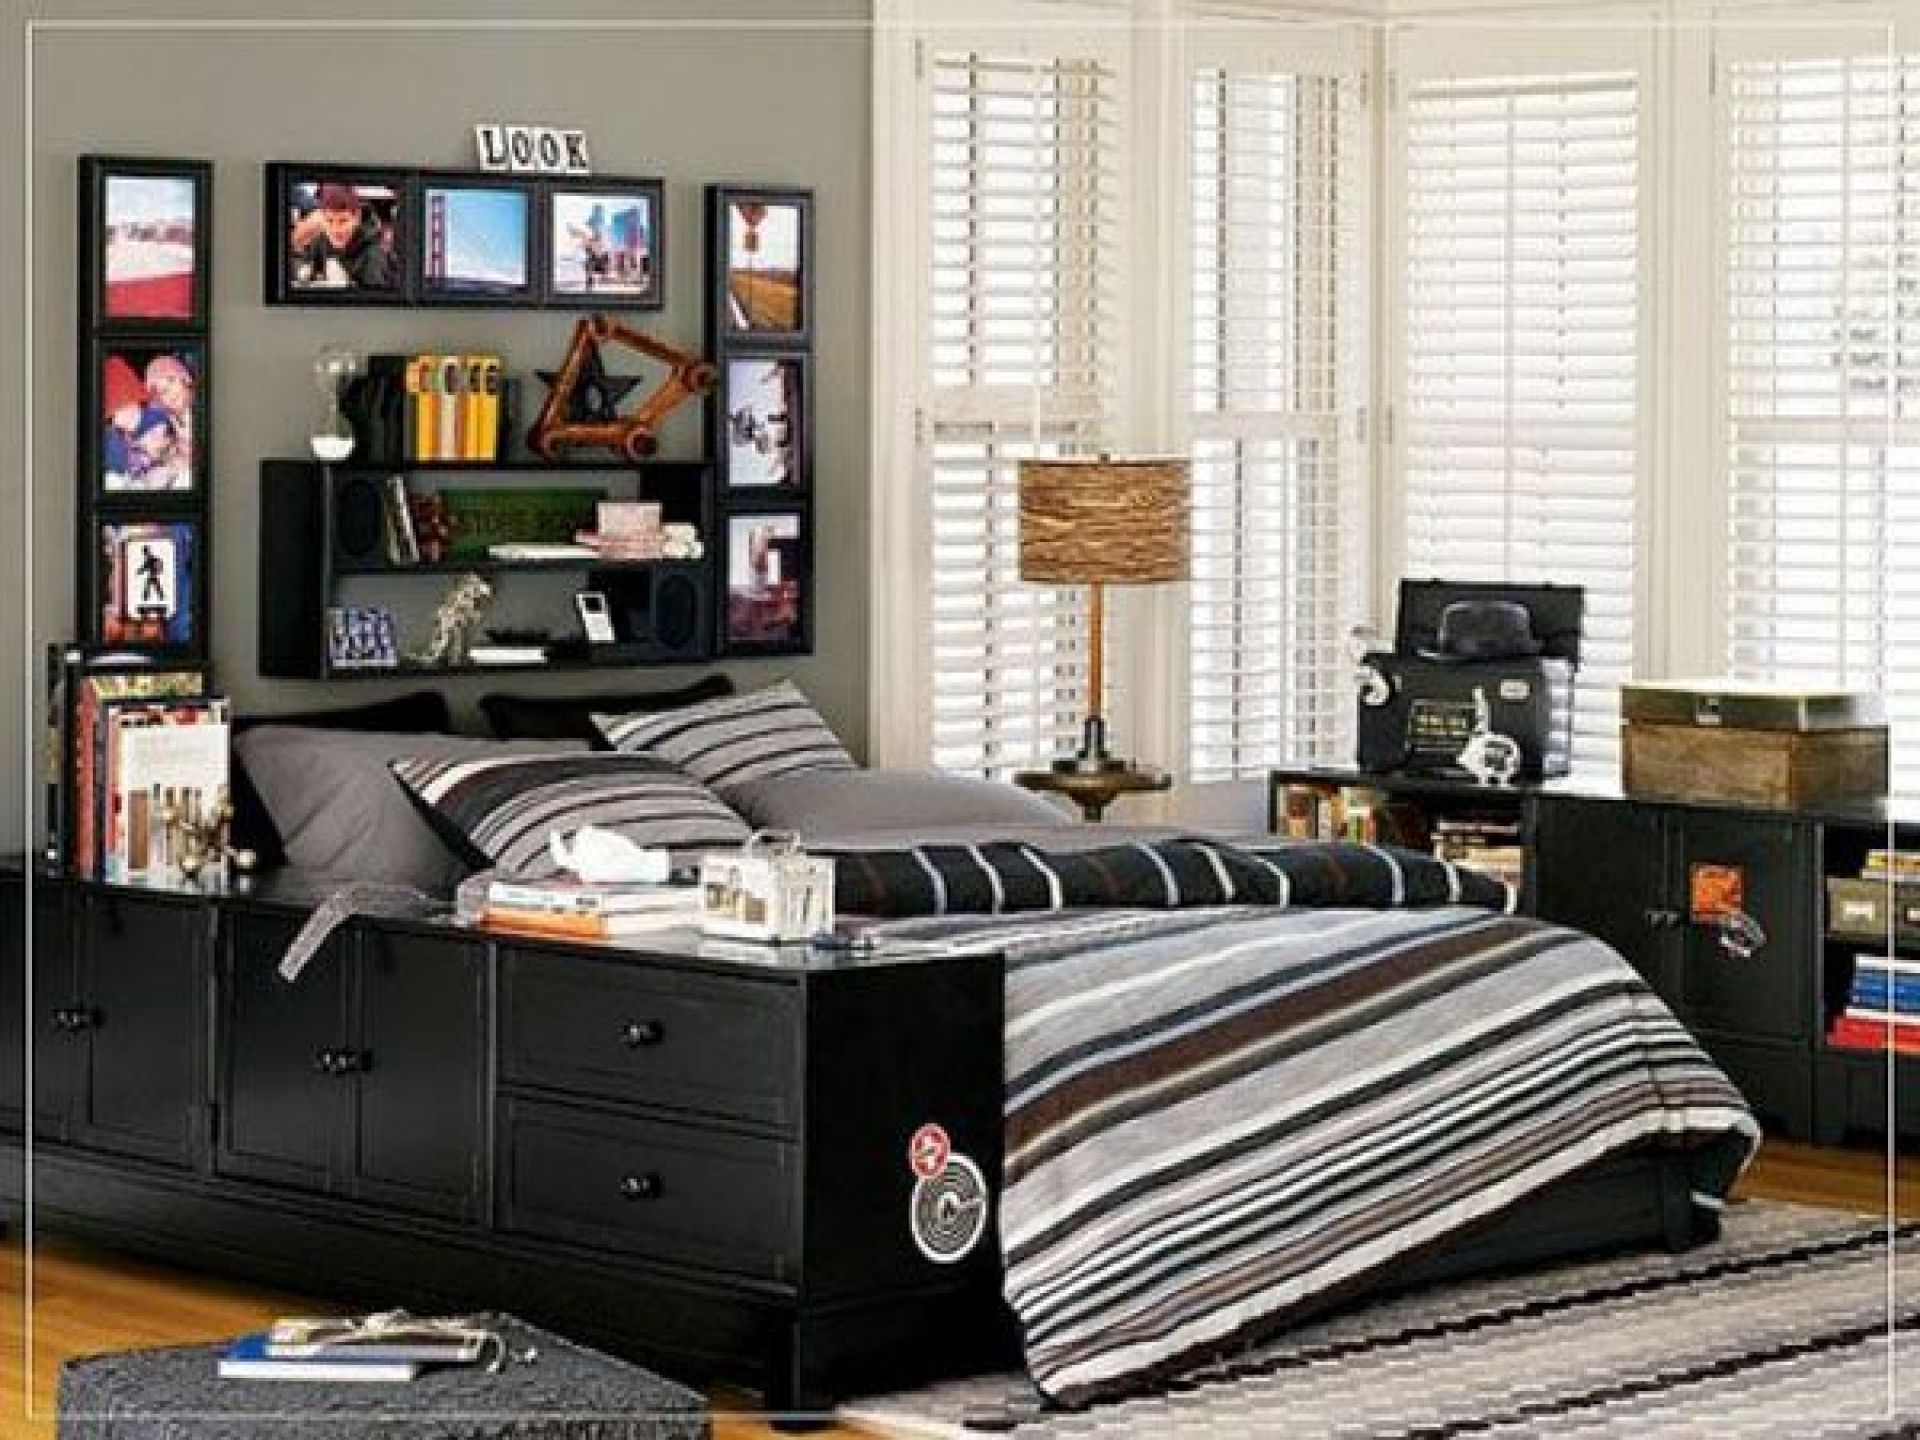 Bedroom furniture for teenage boys - Bedroom Ideas For Teenage Guys With Small Rooms Google Search